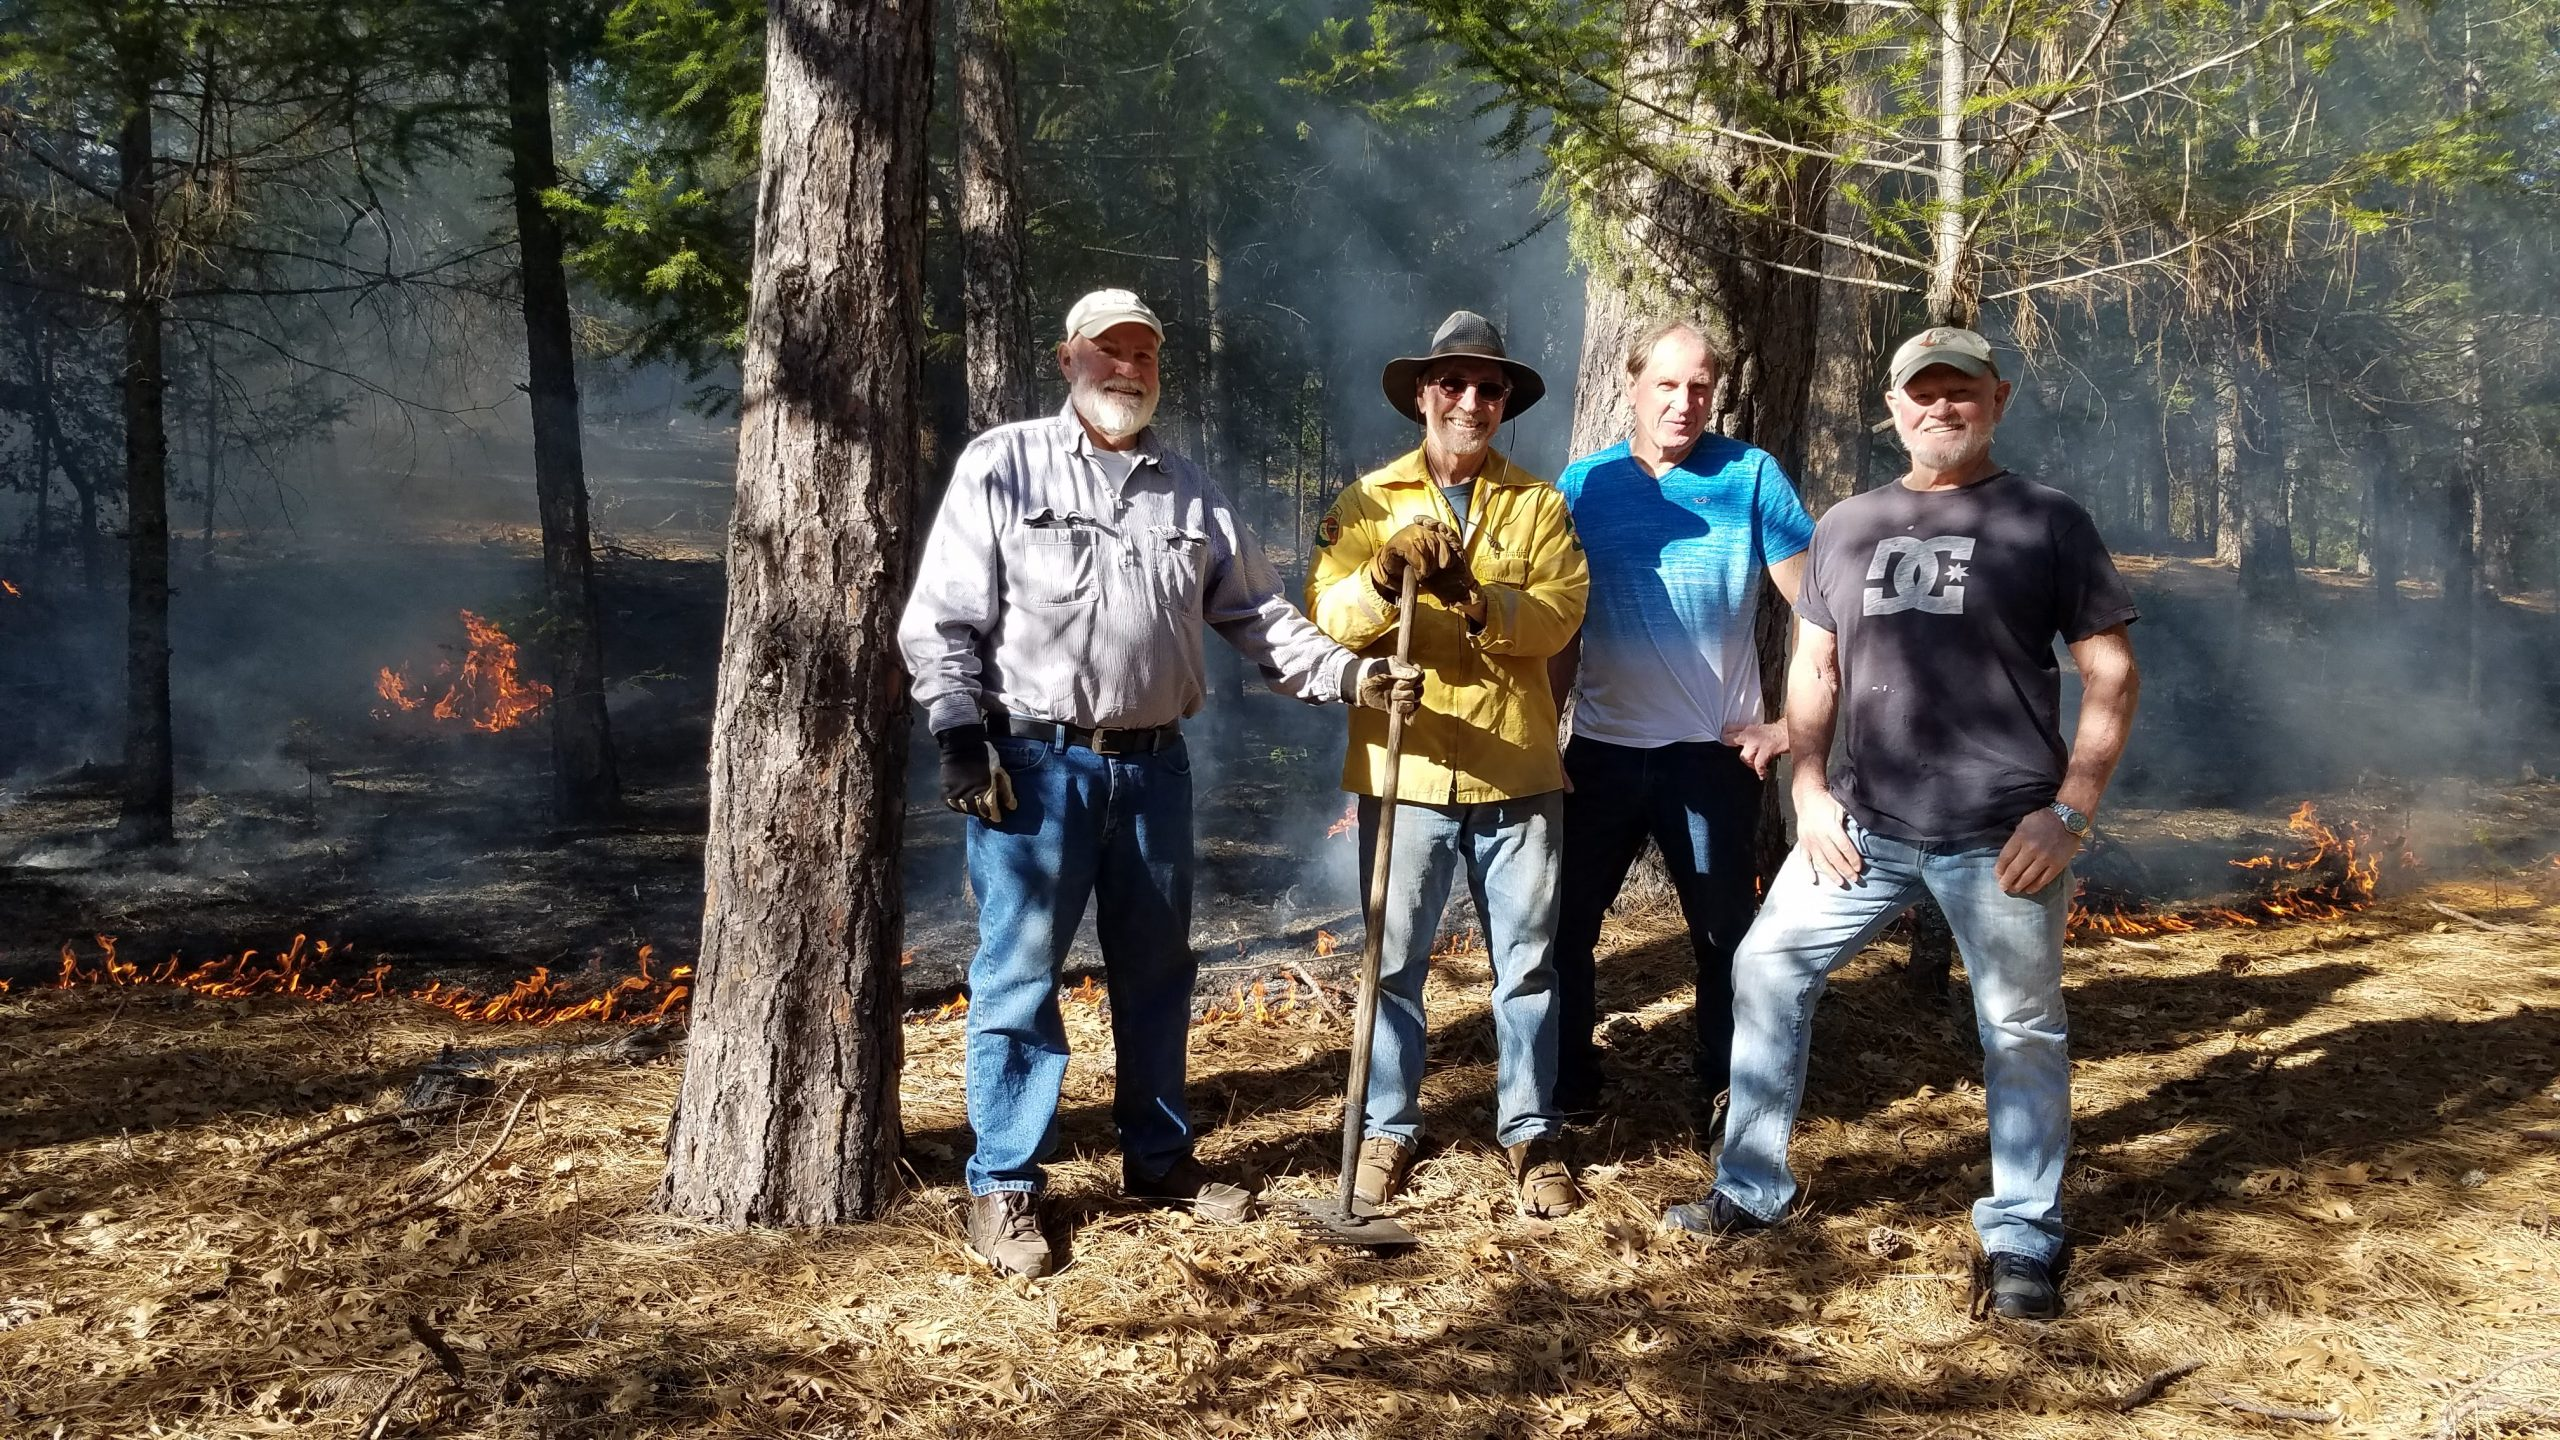 Mike, Gary, Danny, and Steve Prather at a controlled burn on their mountain